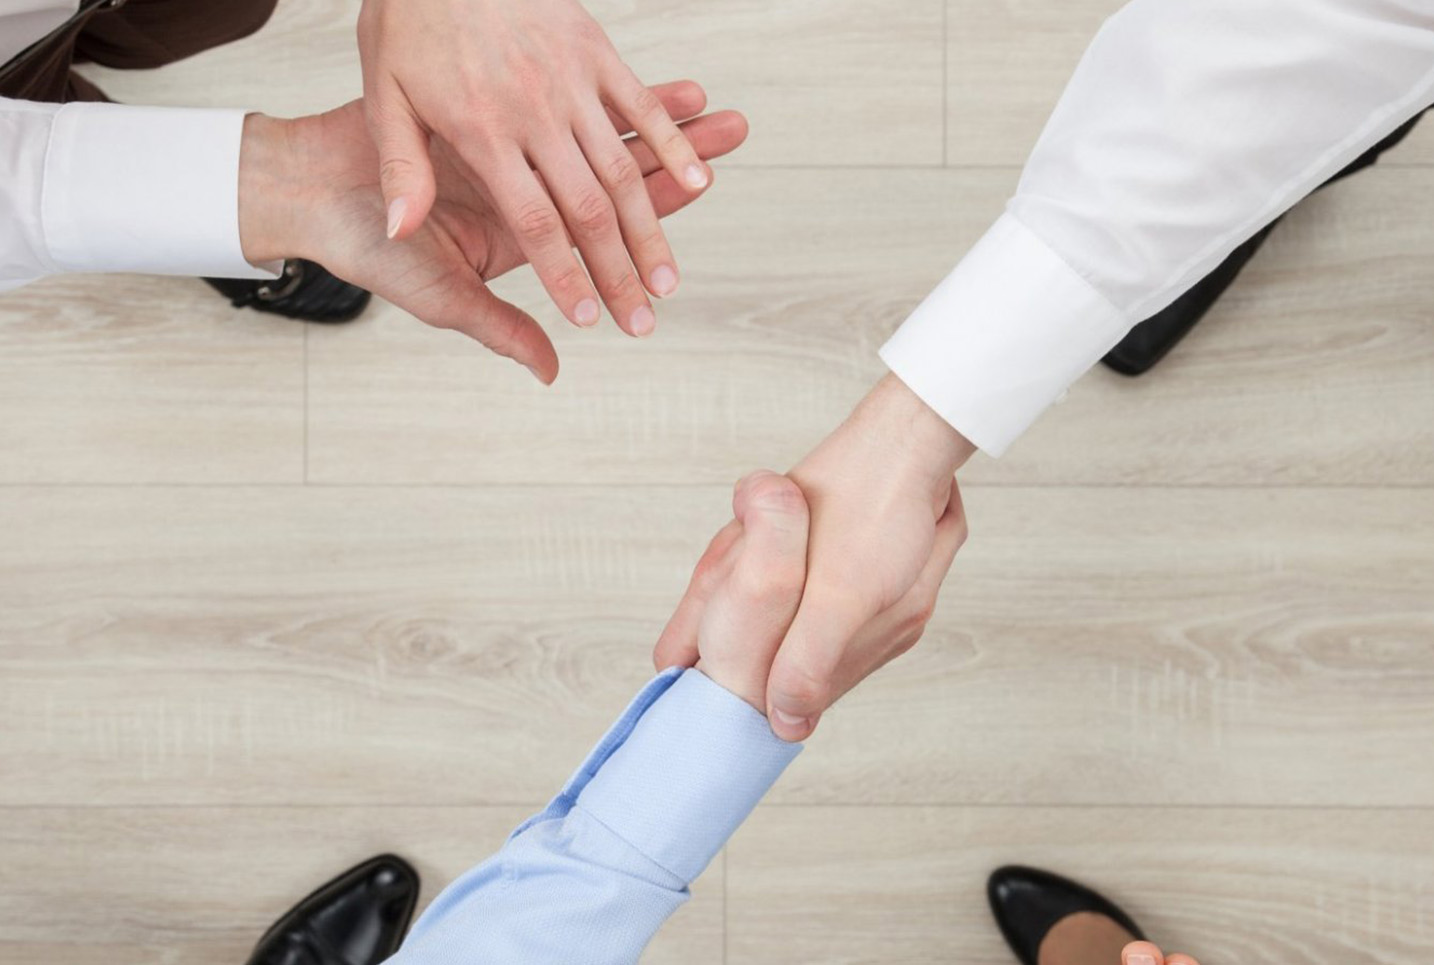 6 Ways to Confront Workplace Conflict Before It Gets Out of Hand